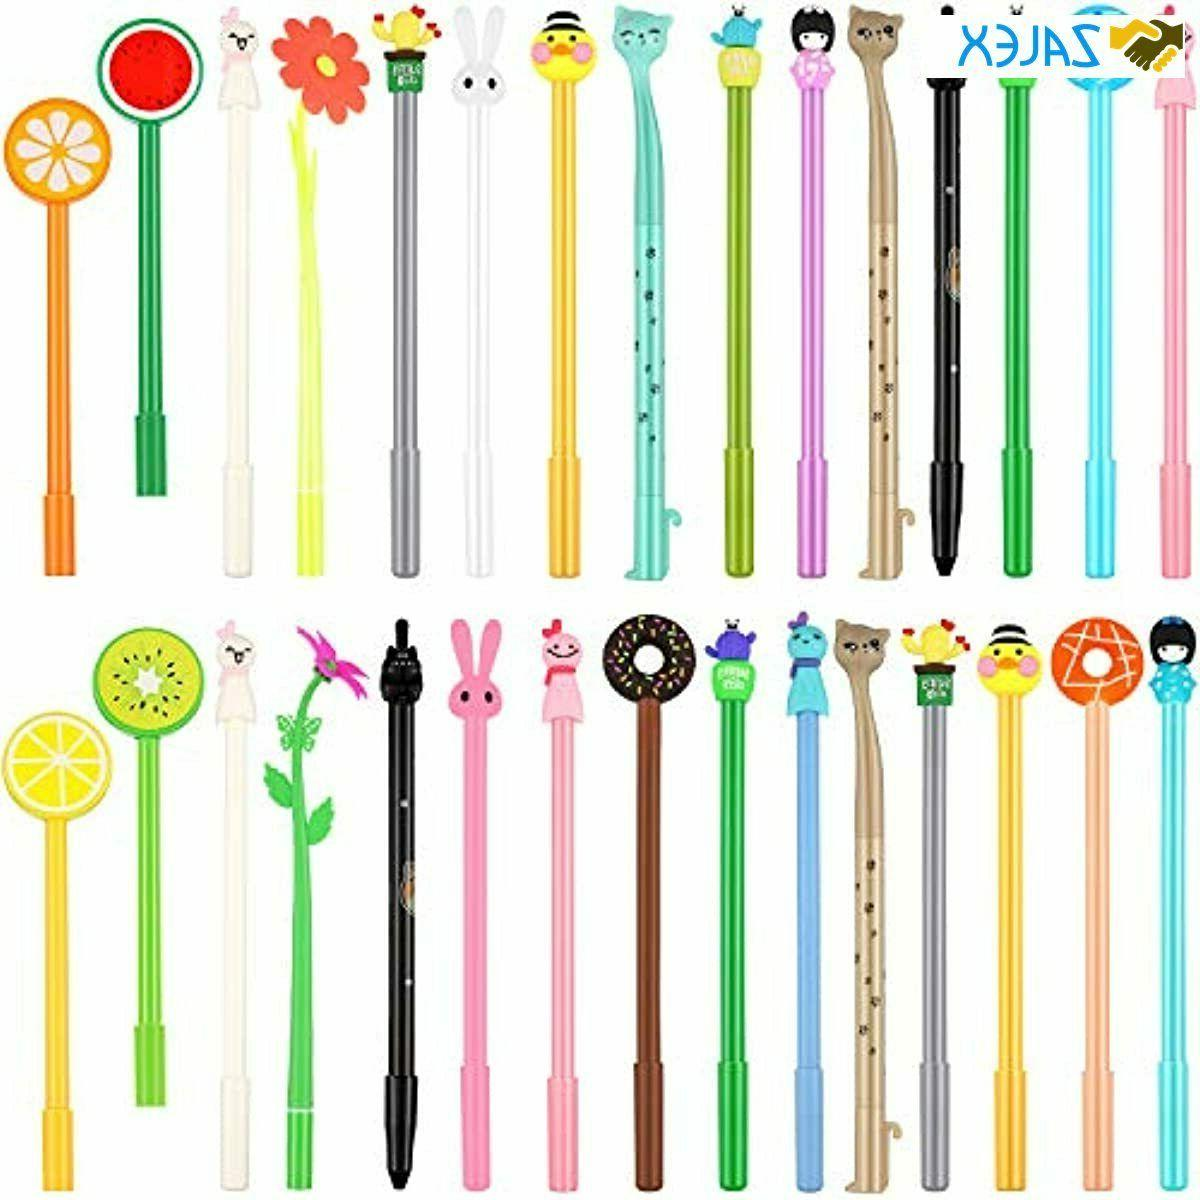 30 Pieces Cute Gel Ink Pens Assorted Style Writing Pens